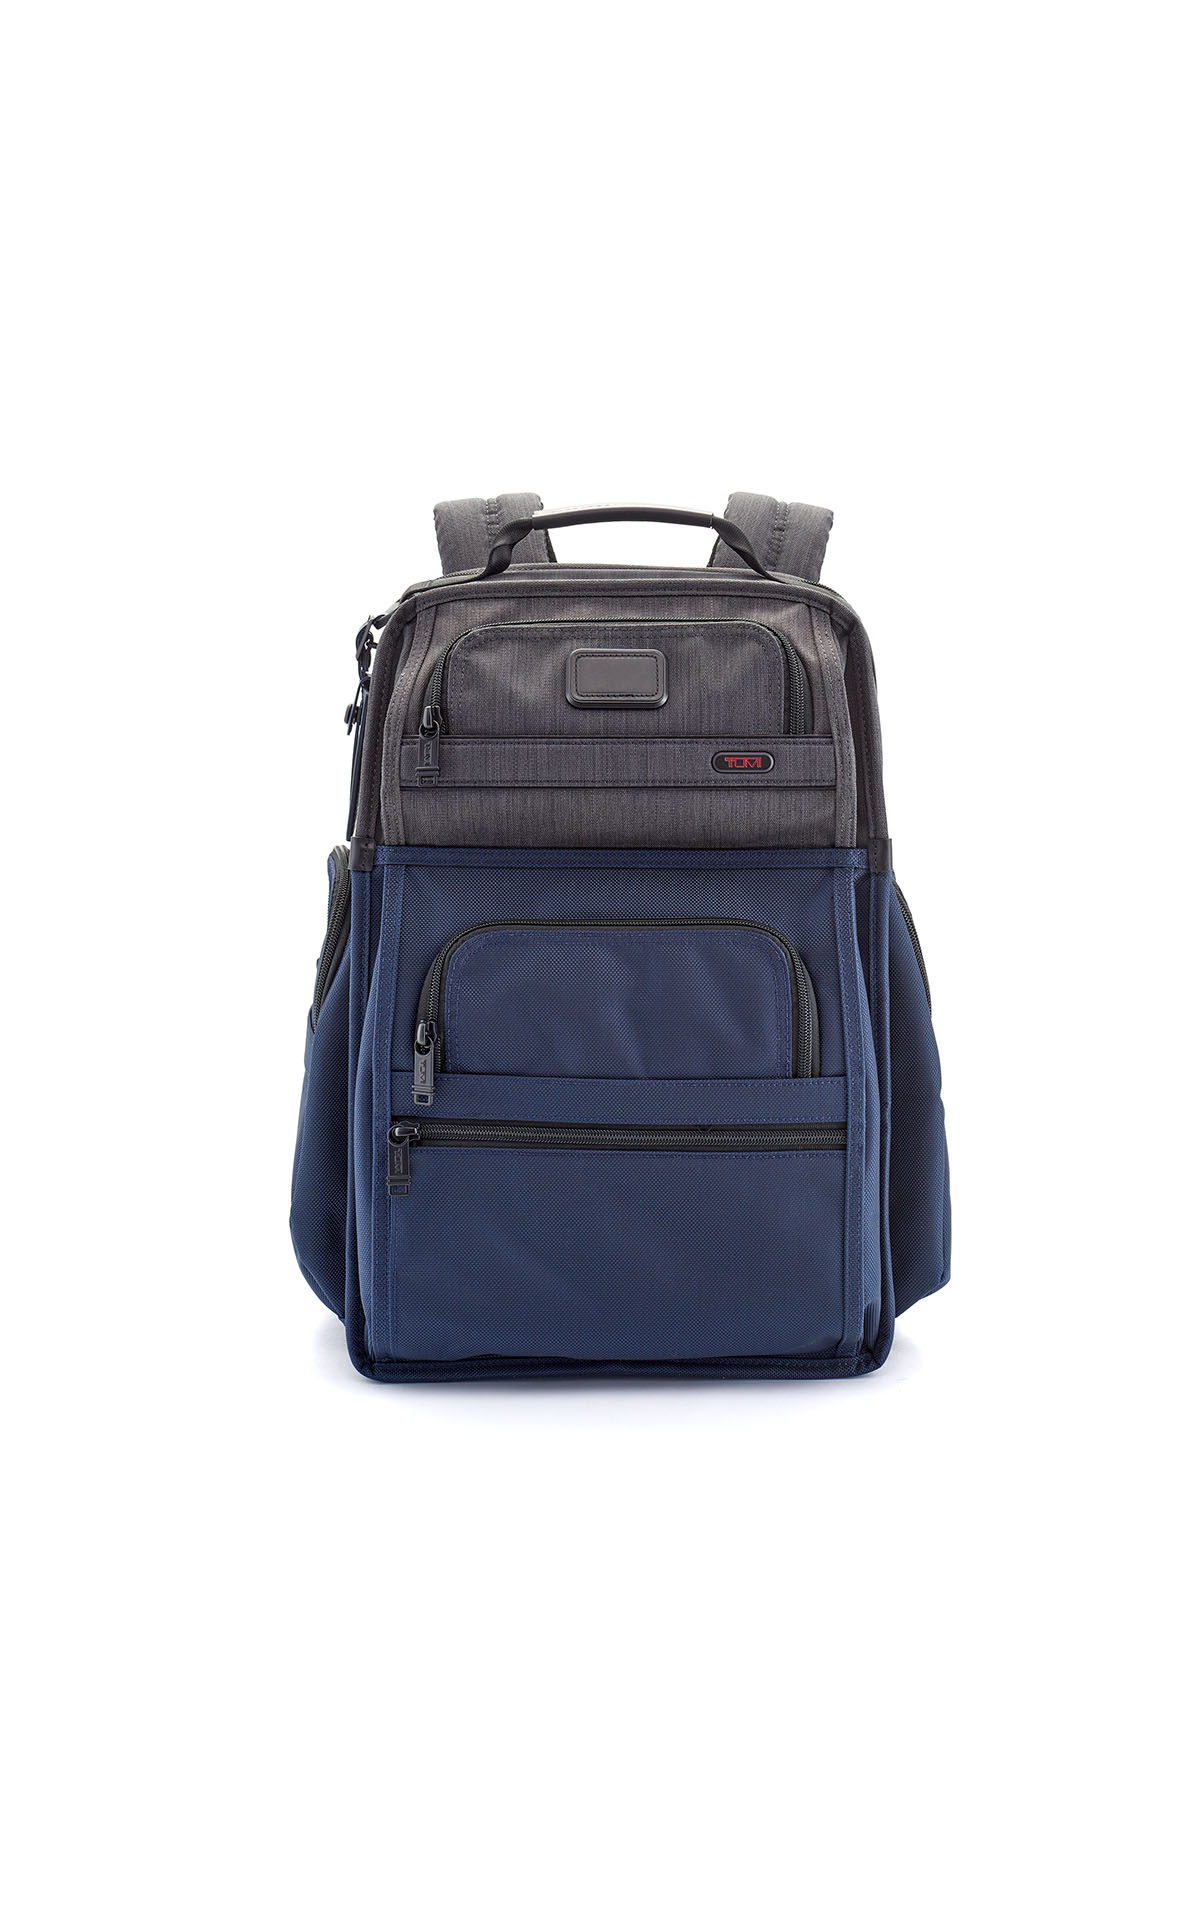 Tumi Briefpack at The Bicester Village Shopping Collection